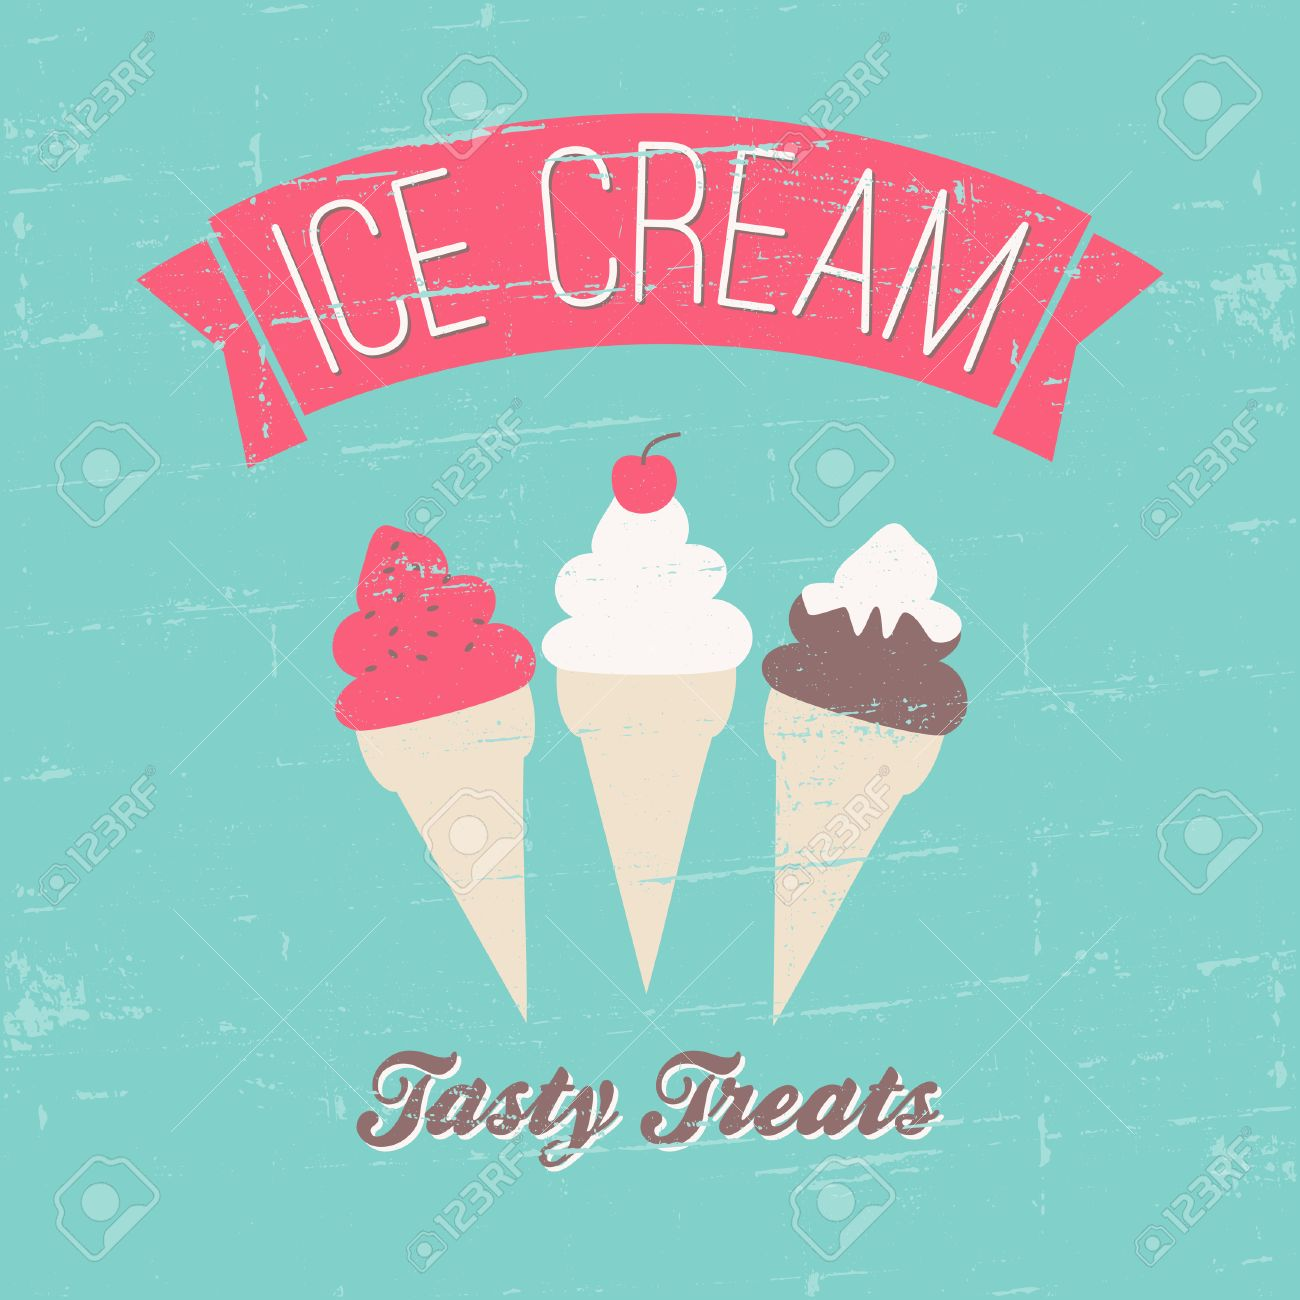 Retro Style Ice Cream Poster In Blue, Pink And Brown. Royalty Free ...